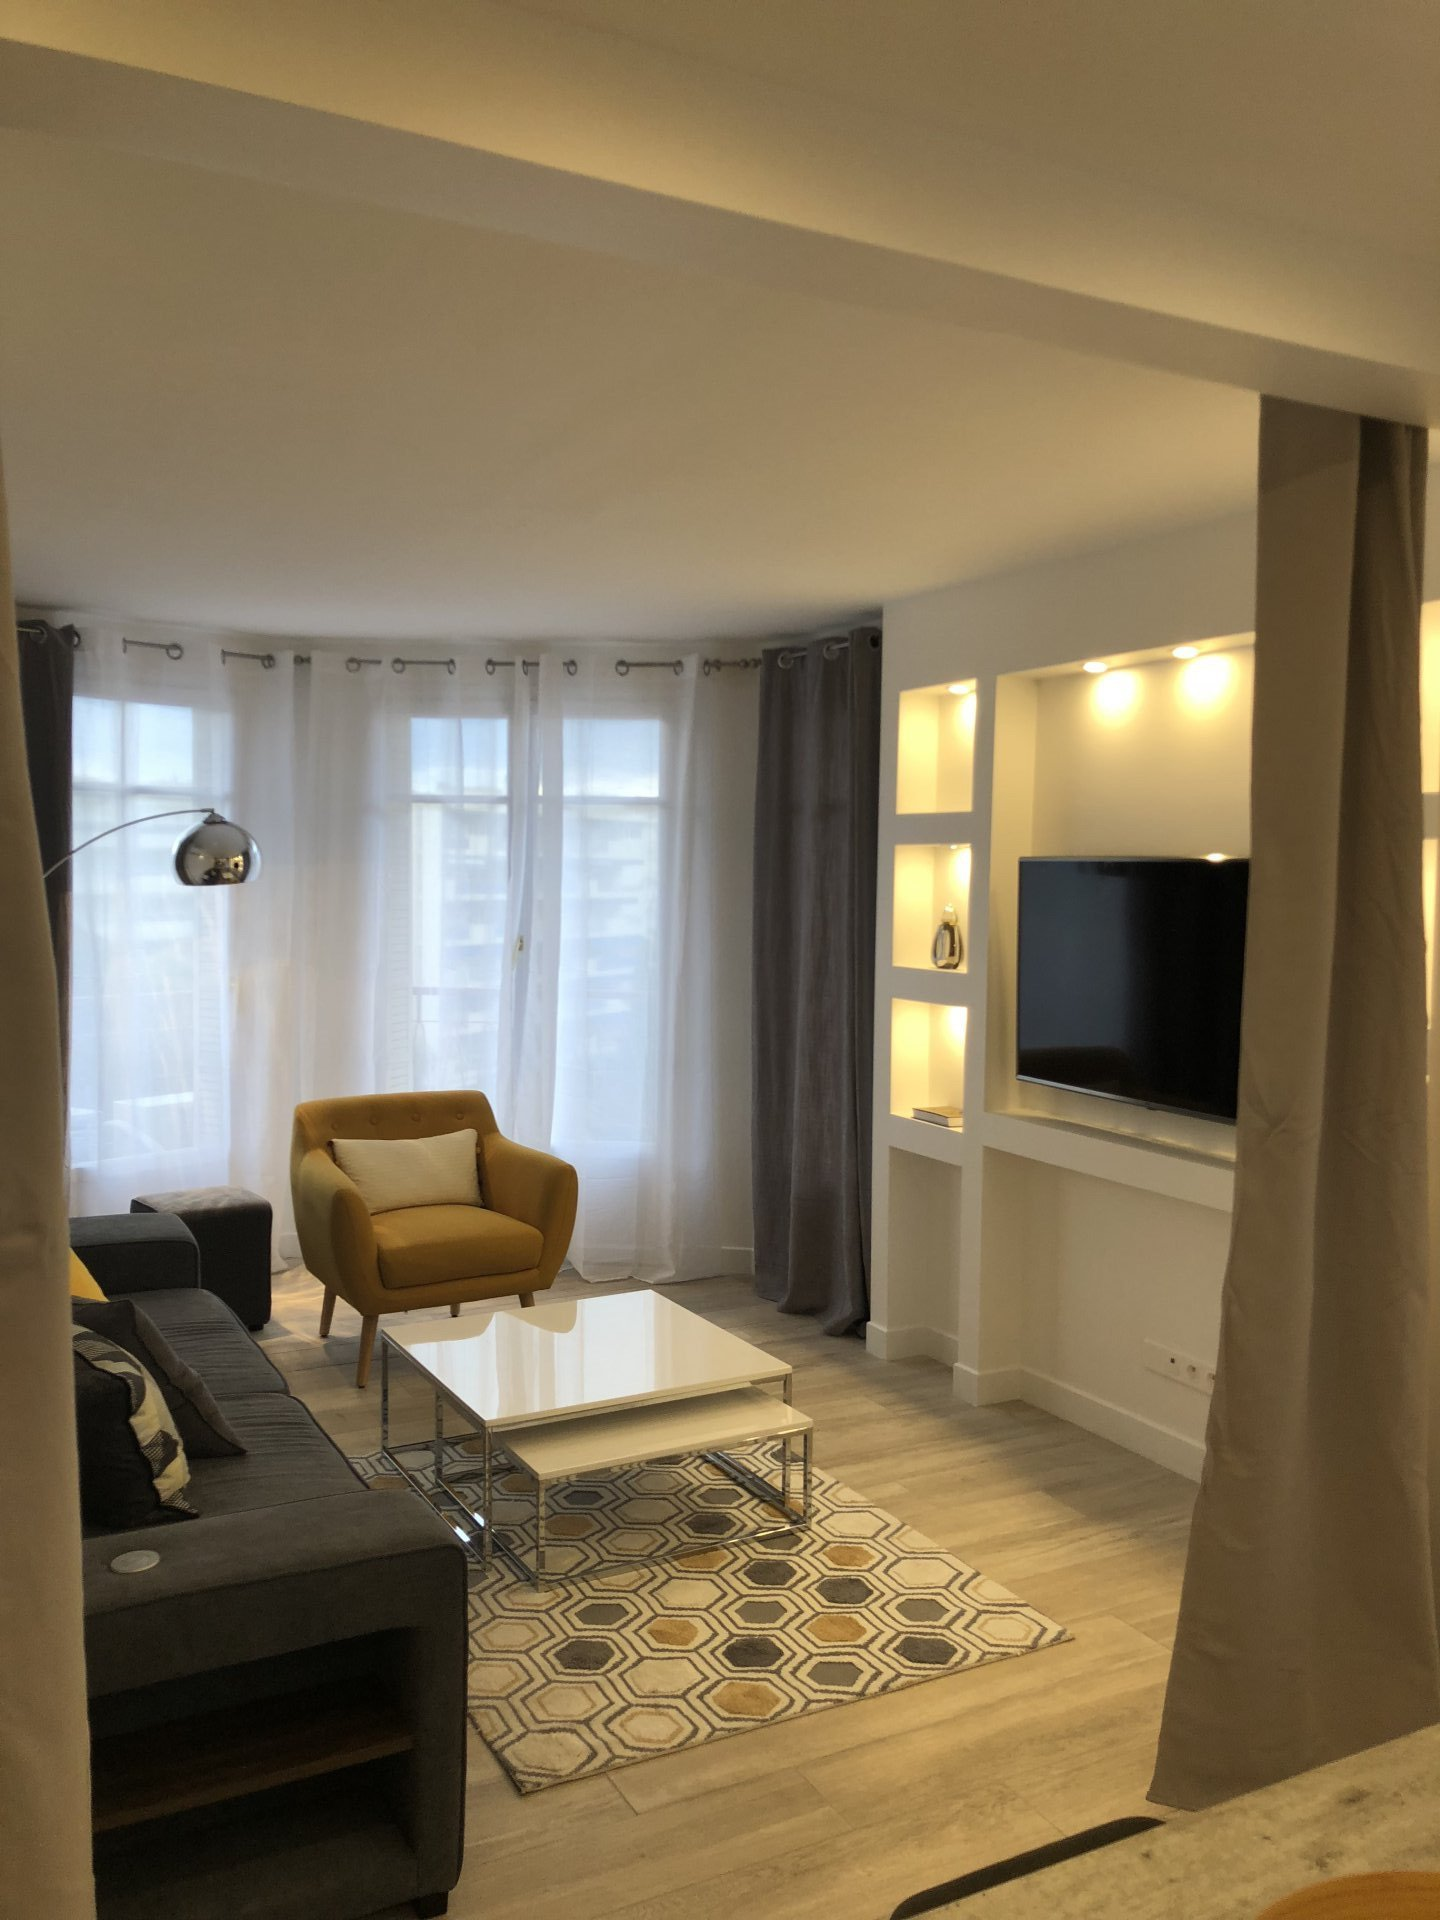 2 bedrooms in Cannes Banane